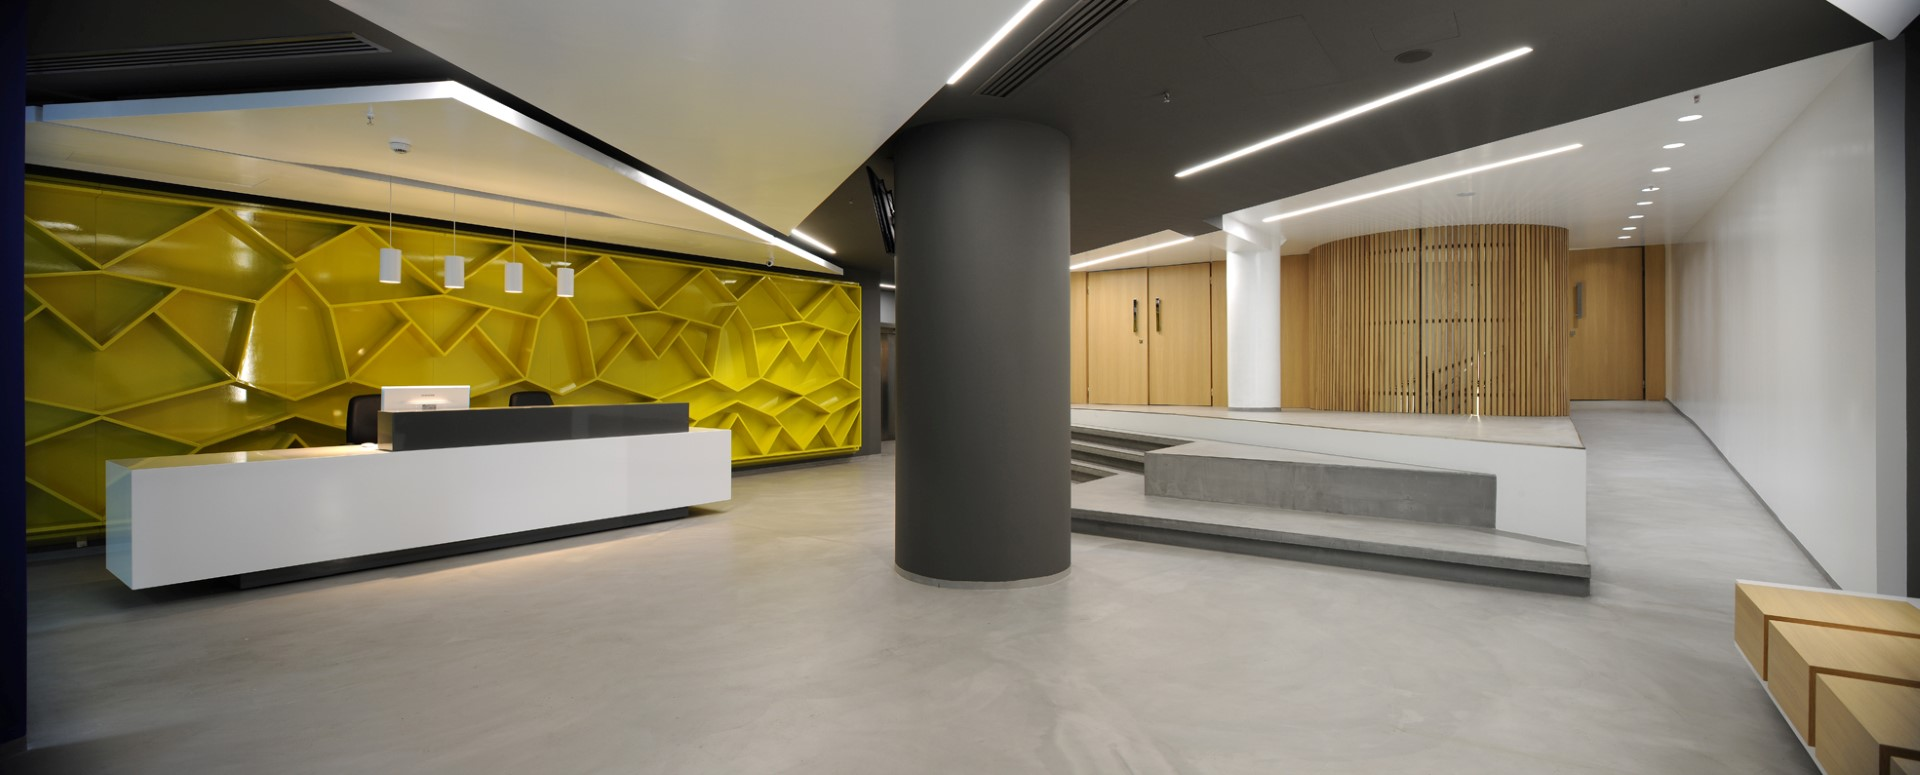 IEK AKMI S.A. Lobby Redesign in Thessaloniki